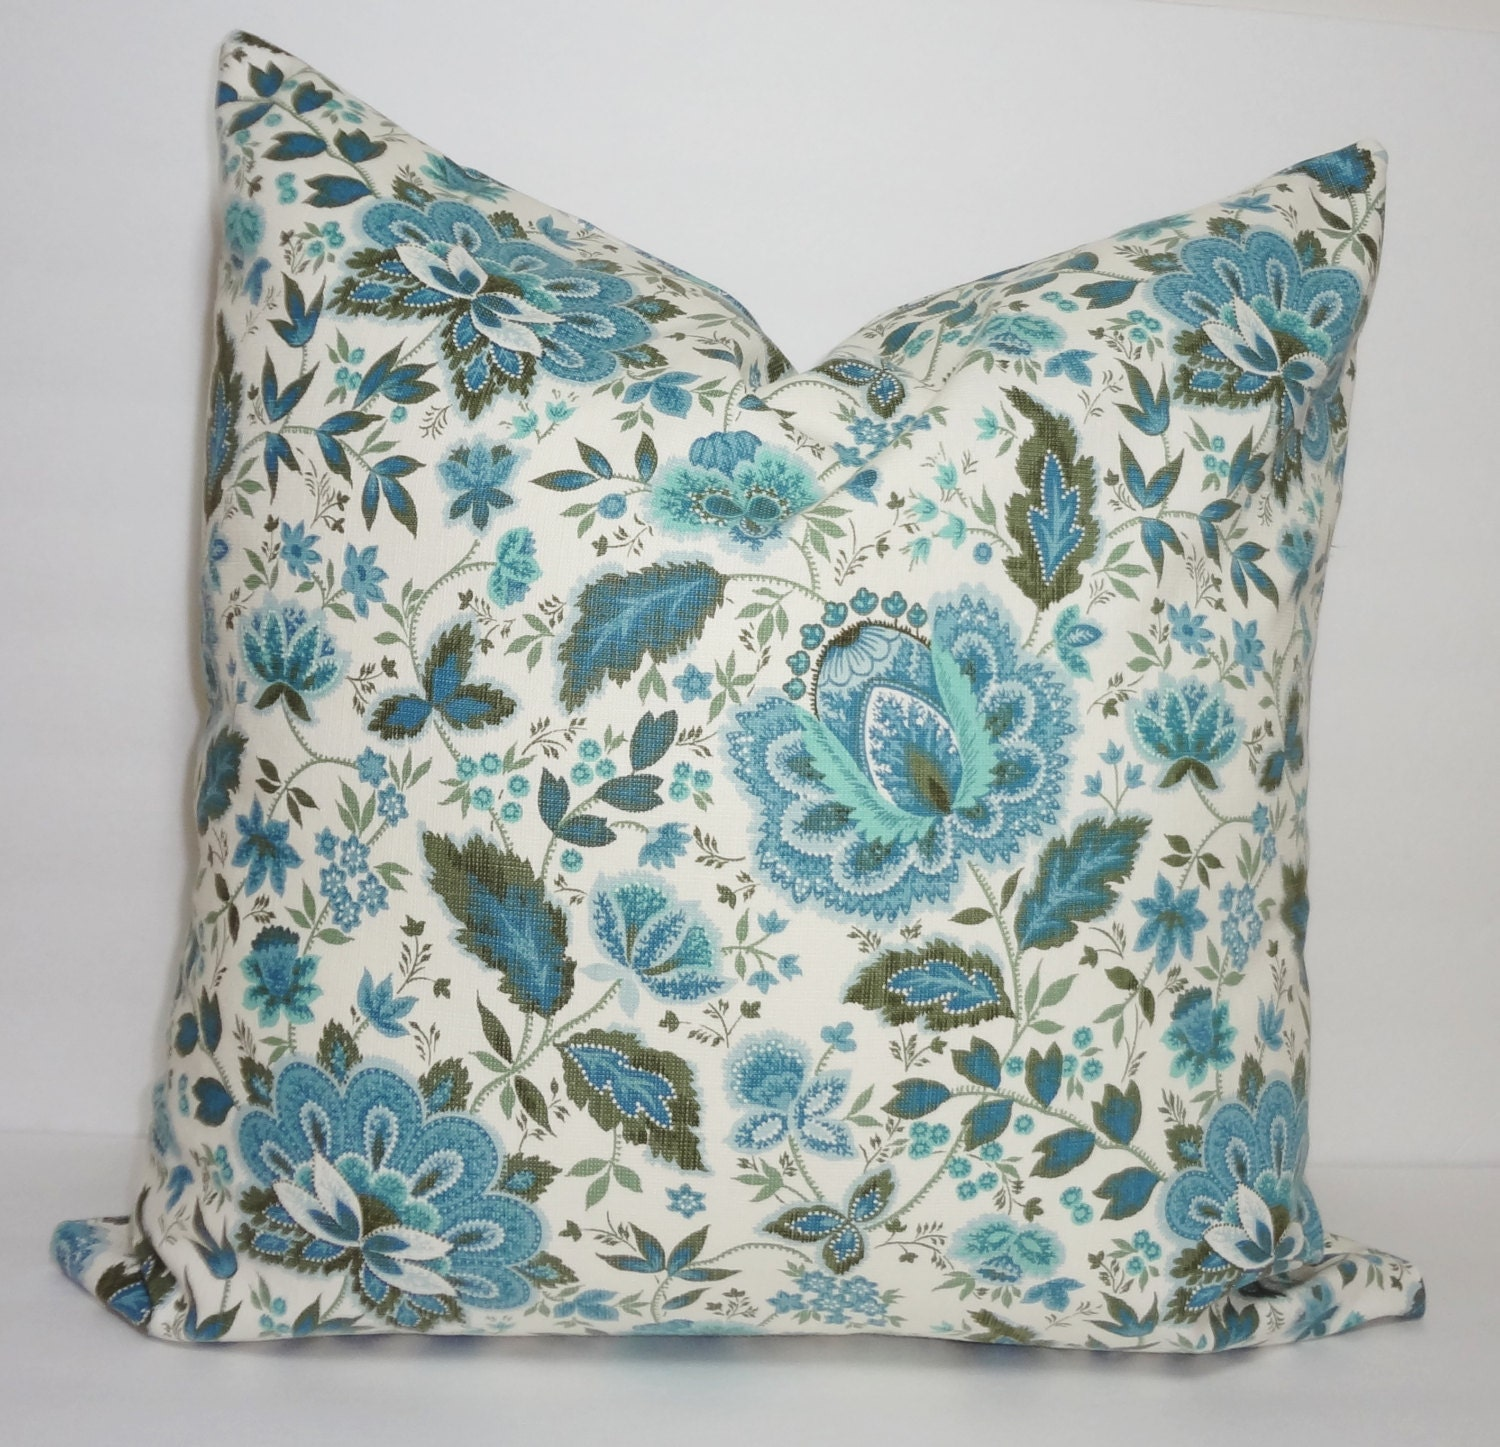 Waverly Blue Floral Pillow Cover Decorative Blue Flower Throw